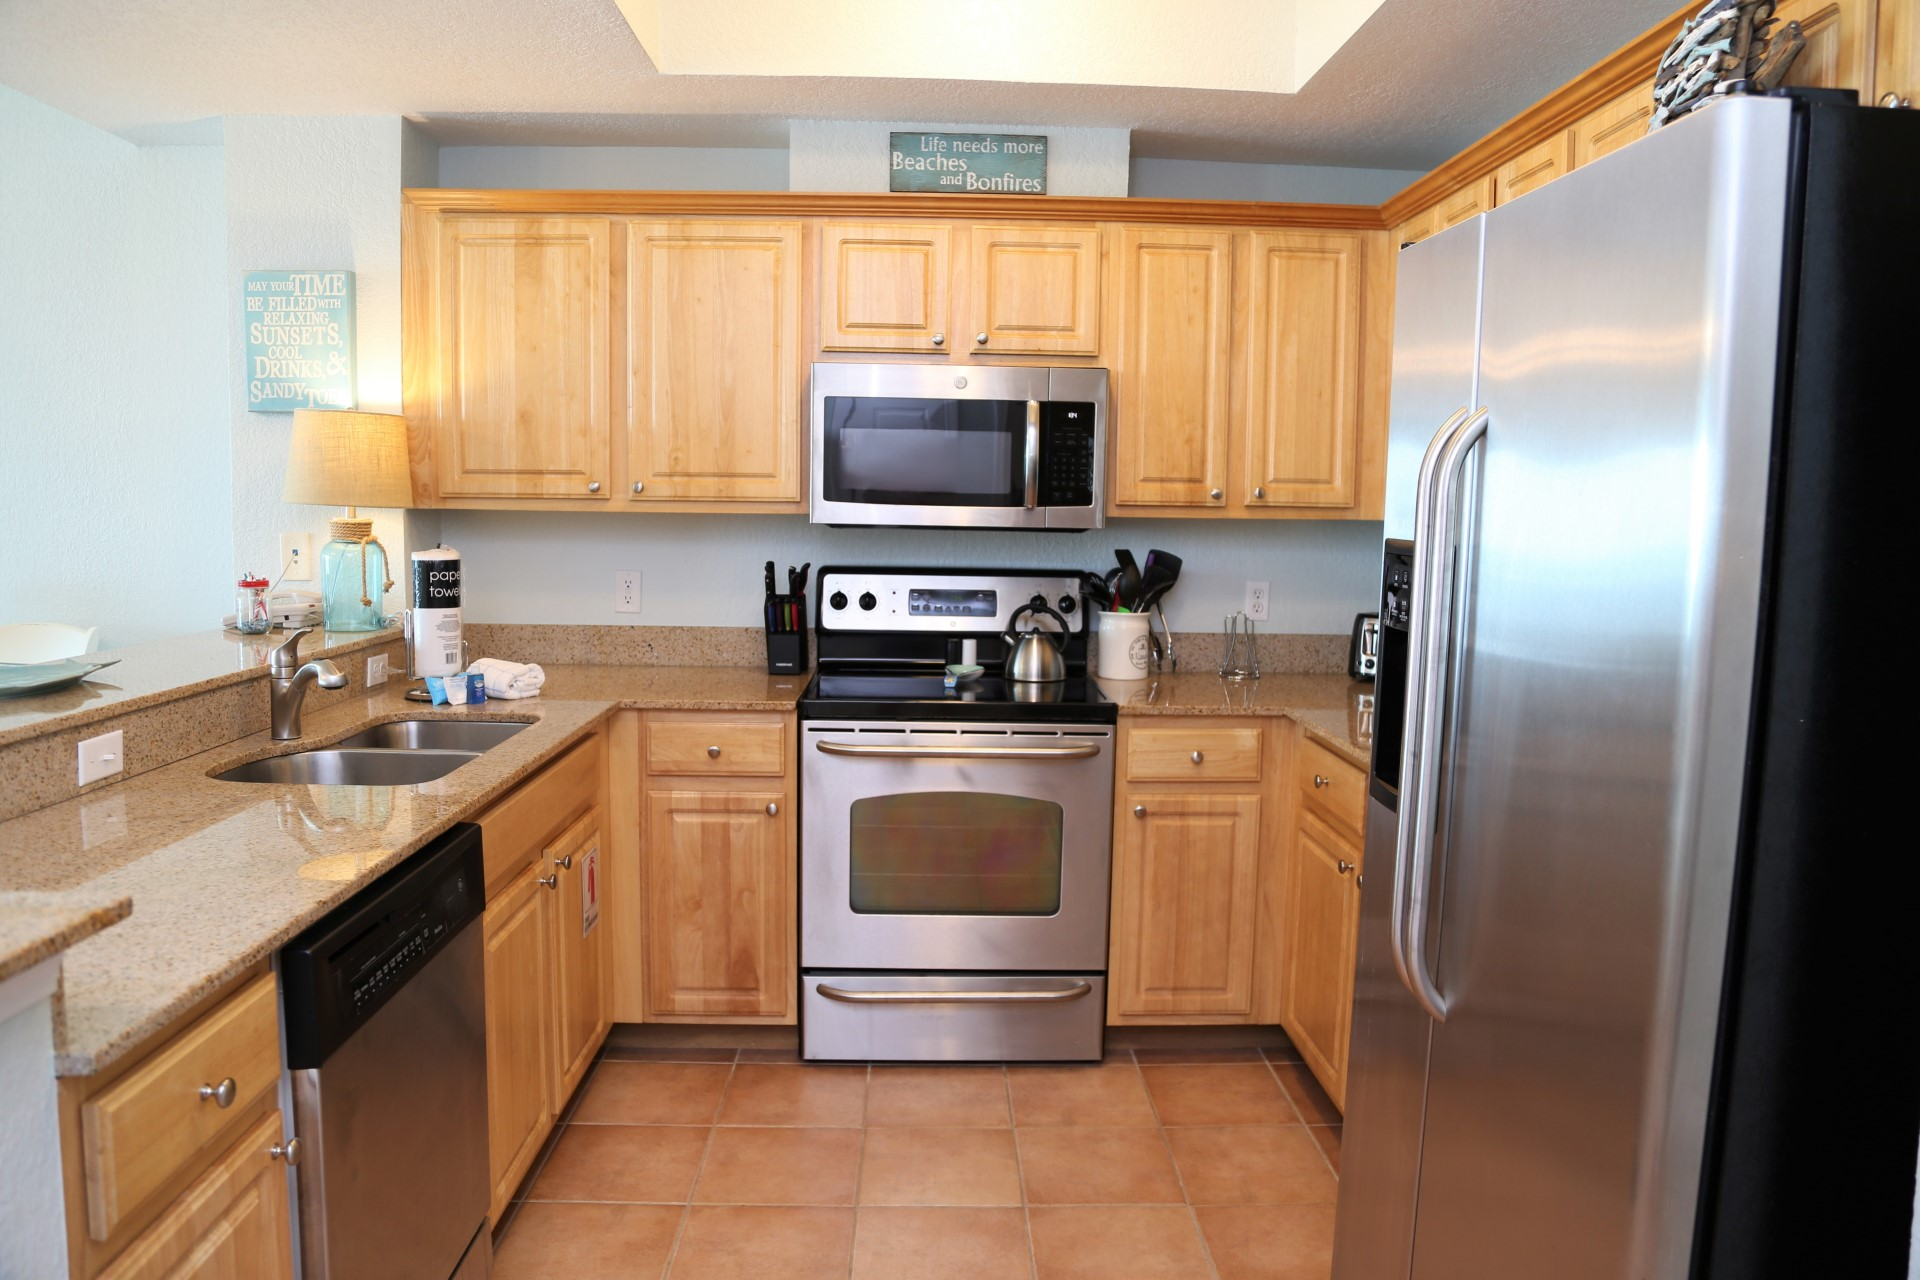 Crystal Shores West 905 - Stainless steel appliances